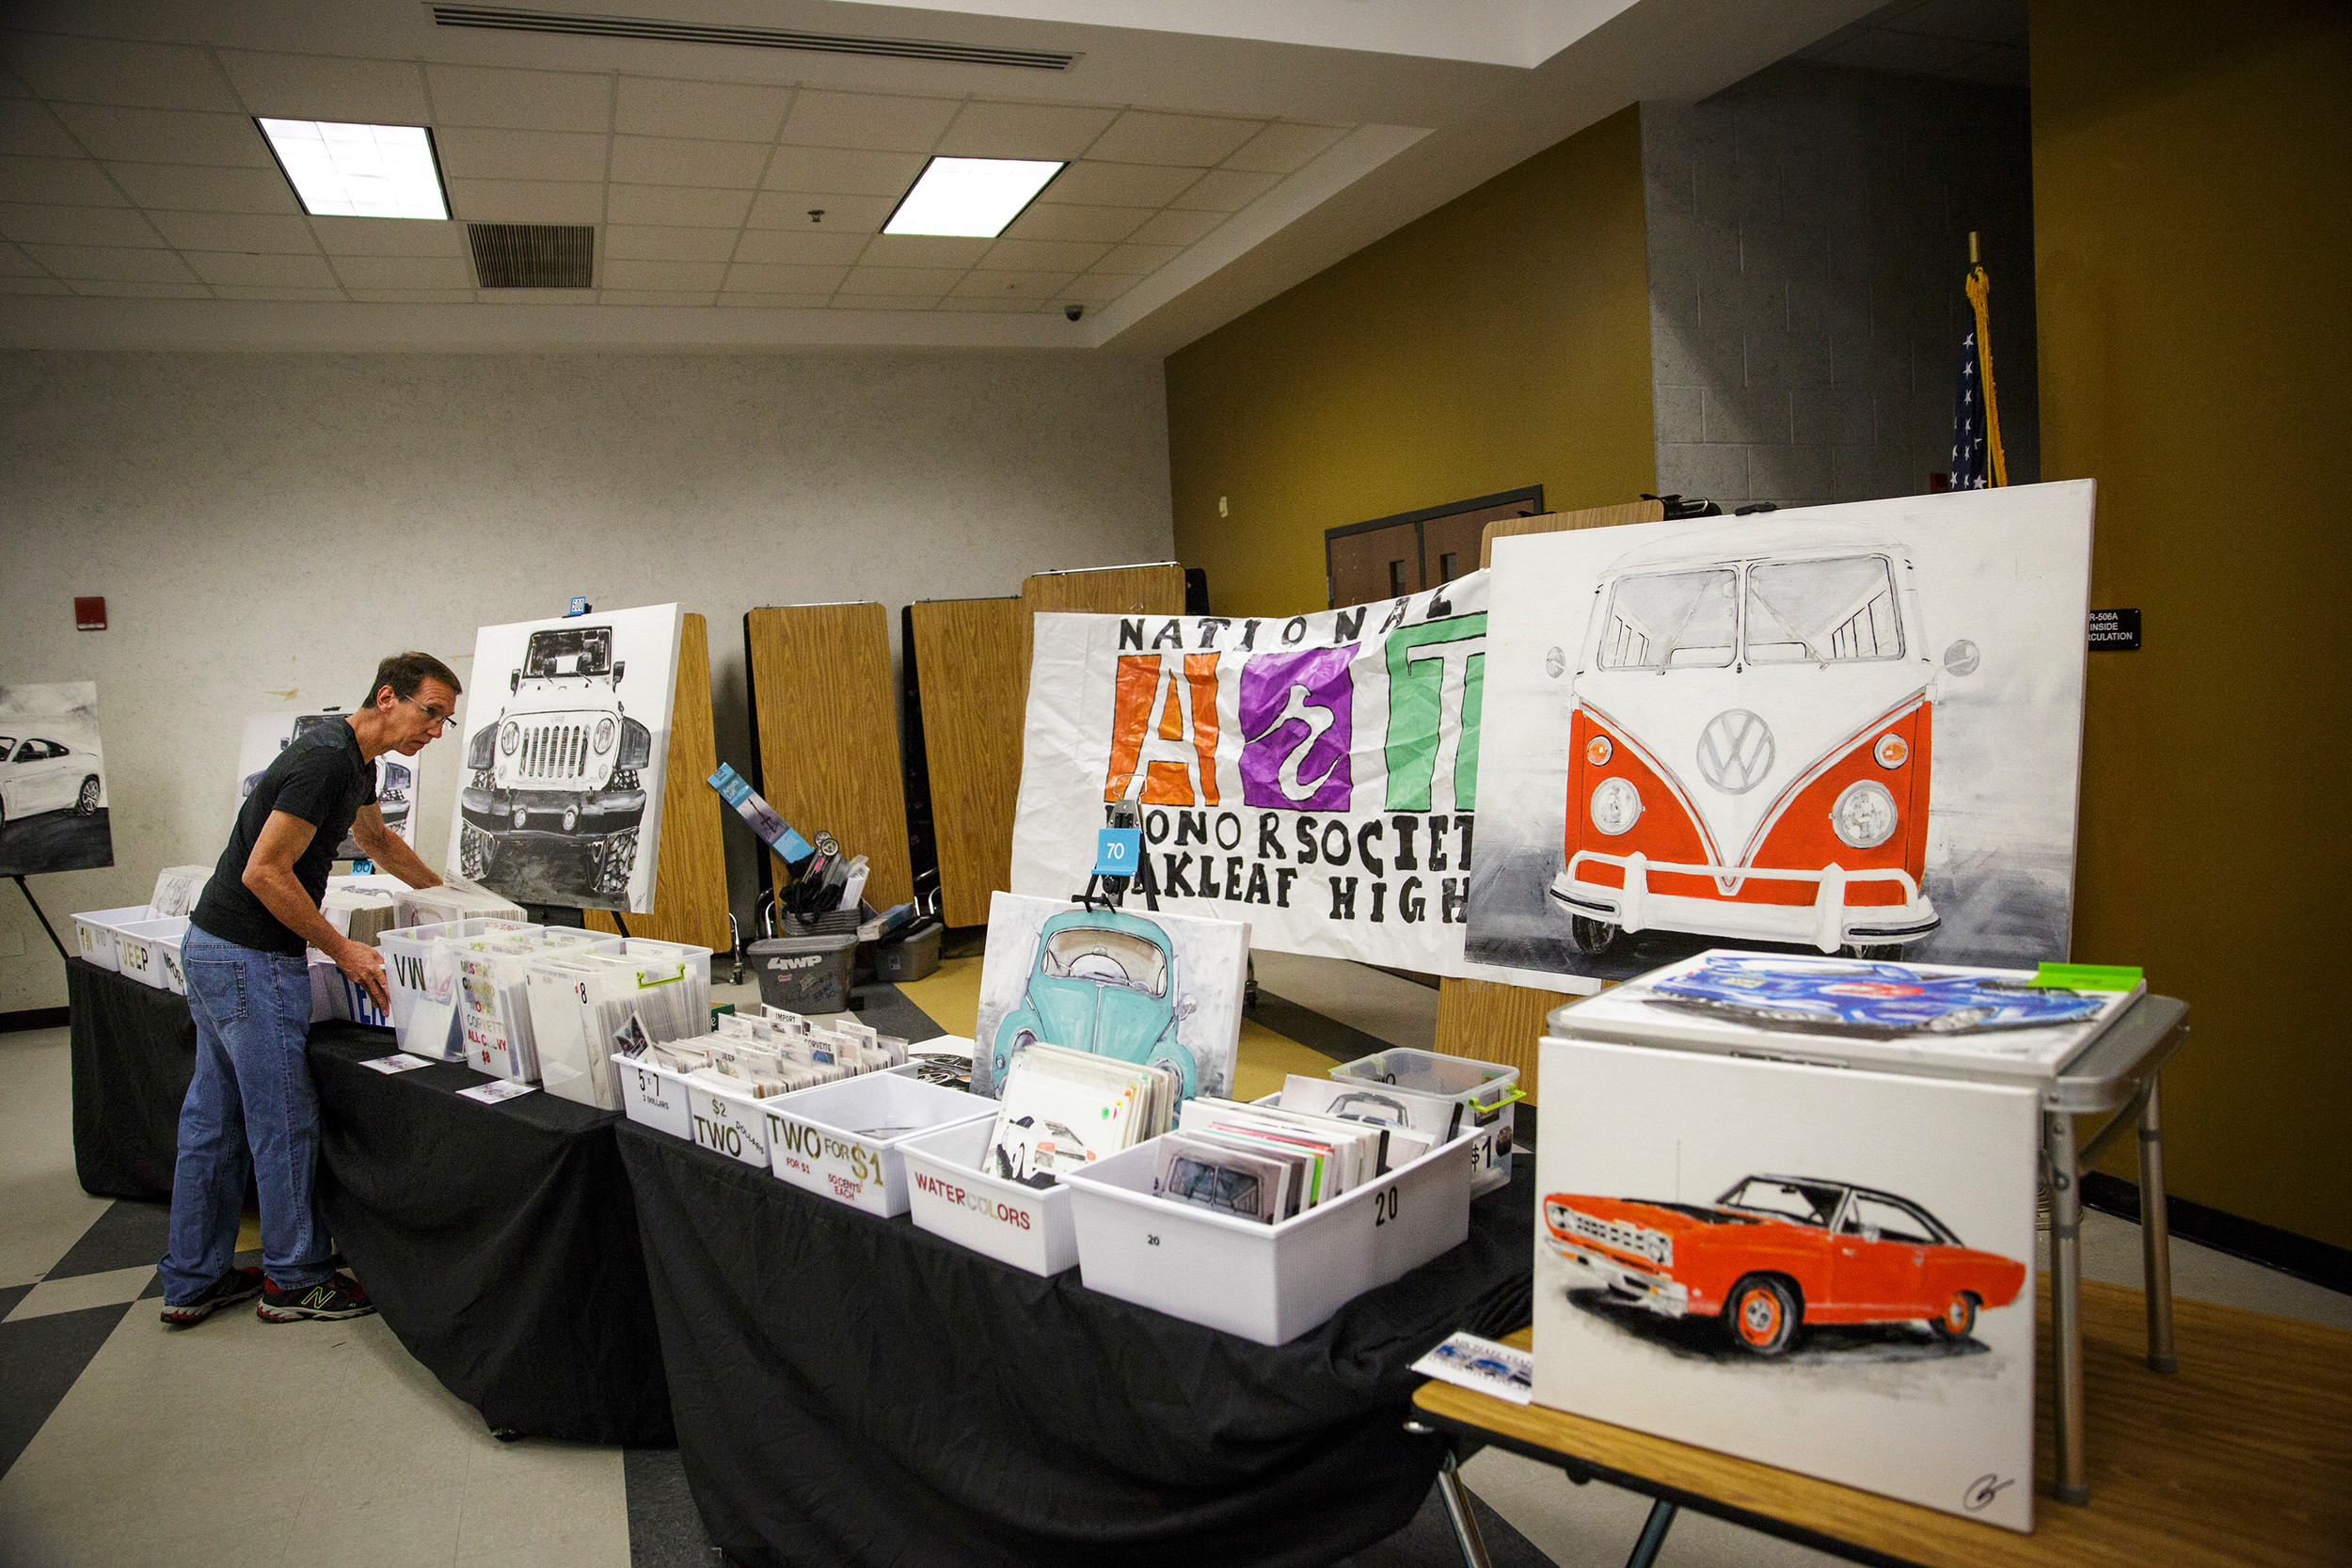 Local artist Michael Viafora organizes prints at his booth at Oakleaf High School during the school's annual Art Walk event.